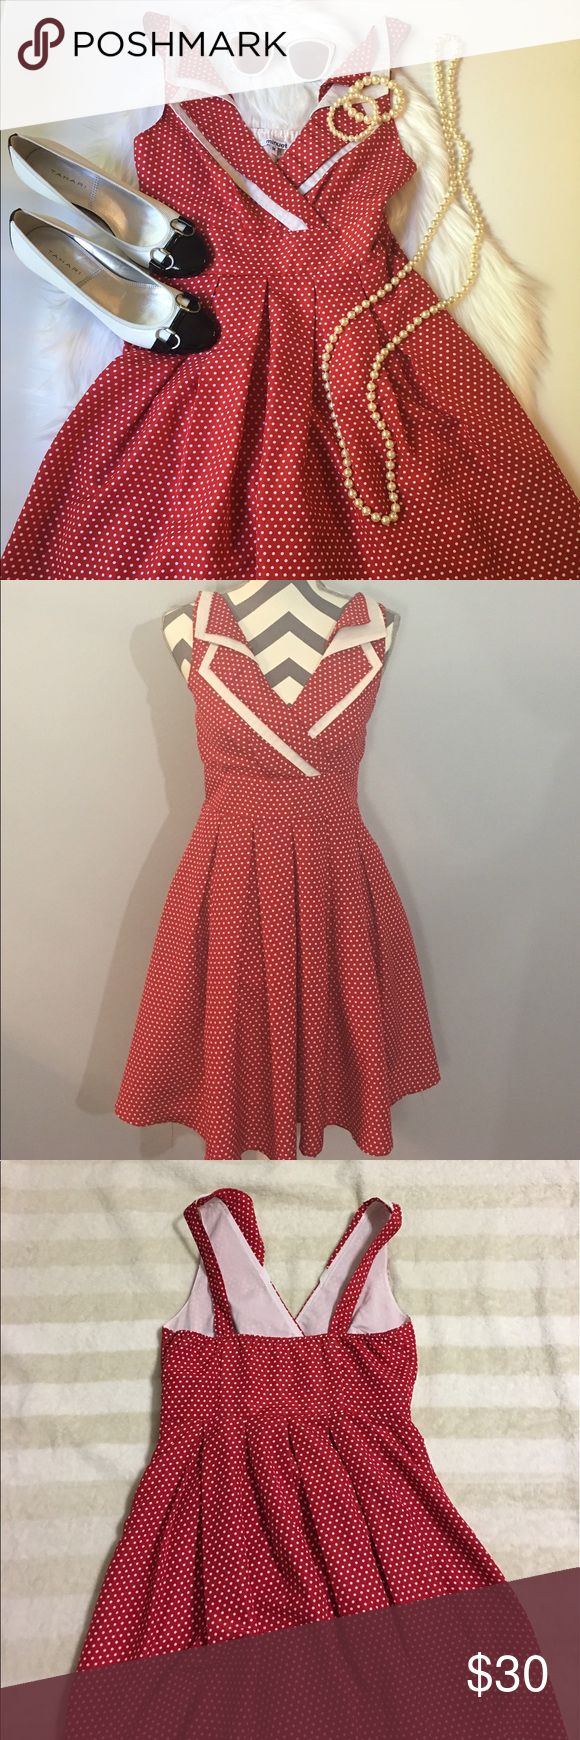 """Anthropologie Minuet Red Polka Dot A-Line Dress Perfect for the summer BBQs. Light weight and flattering.   Gently worn. Excellent condition.                                                     Flatlay Measurements: L 35"""" W 14"""" B 15"""".                                       Material: Polyester 100%                                                                       Brand: Minuet Anthropologie Dresses"""